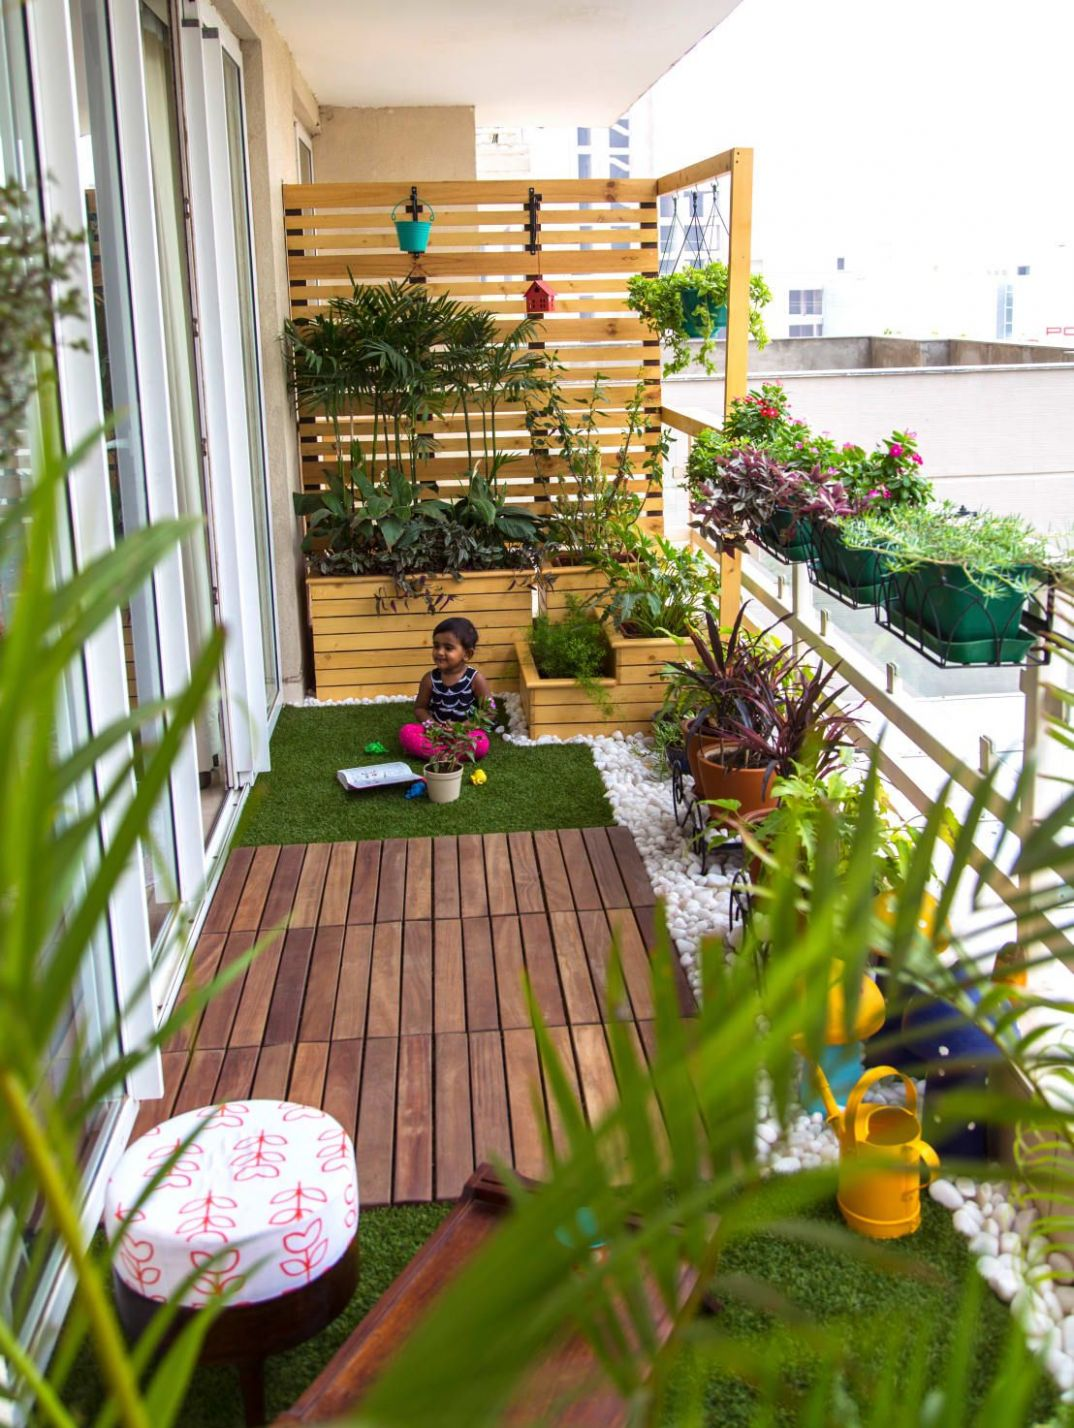 12 Smart Balcony Garden Ideas That are Awesome | Small balcony ...